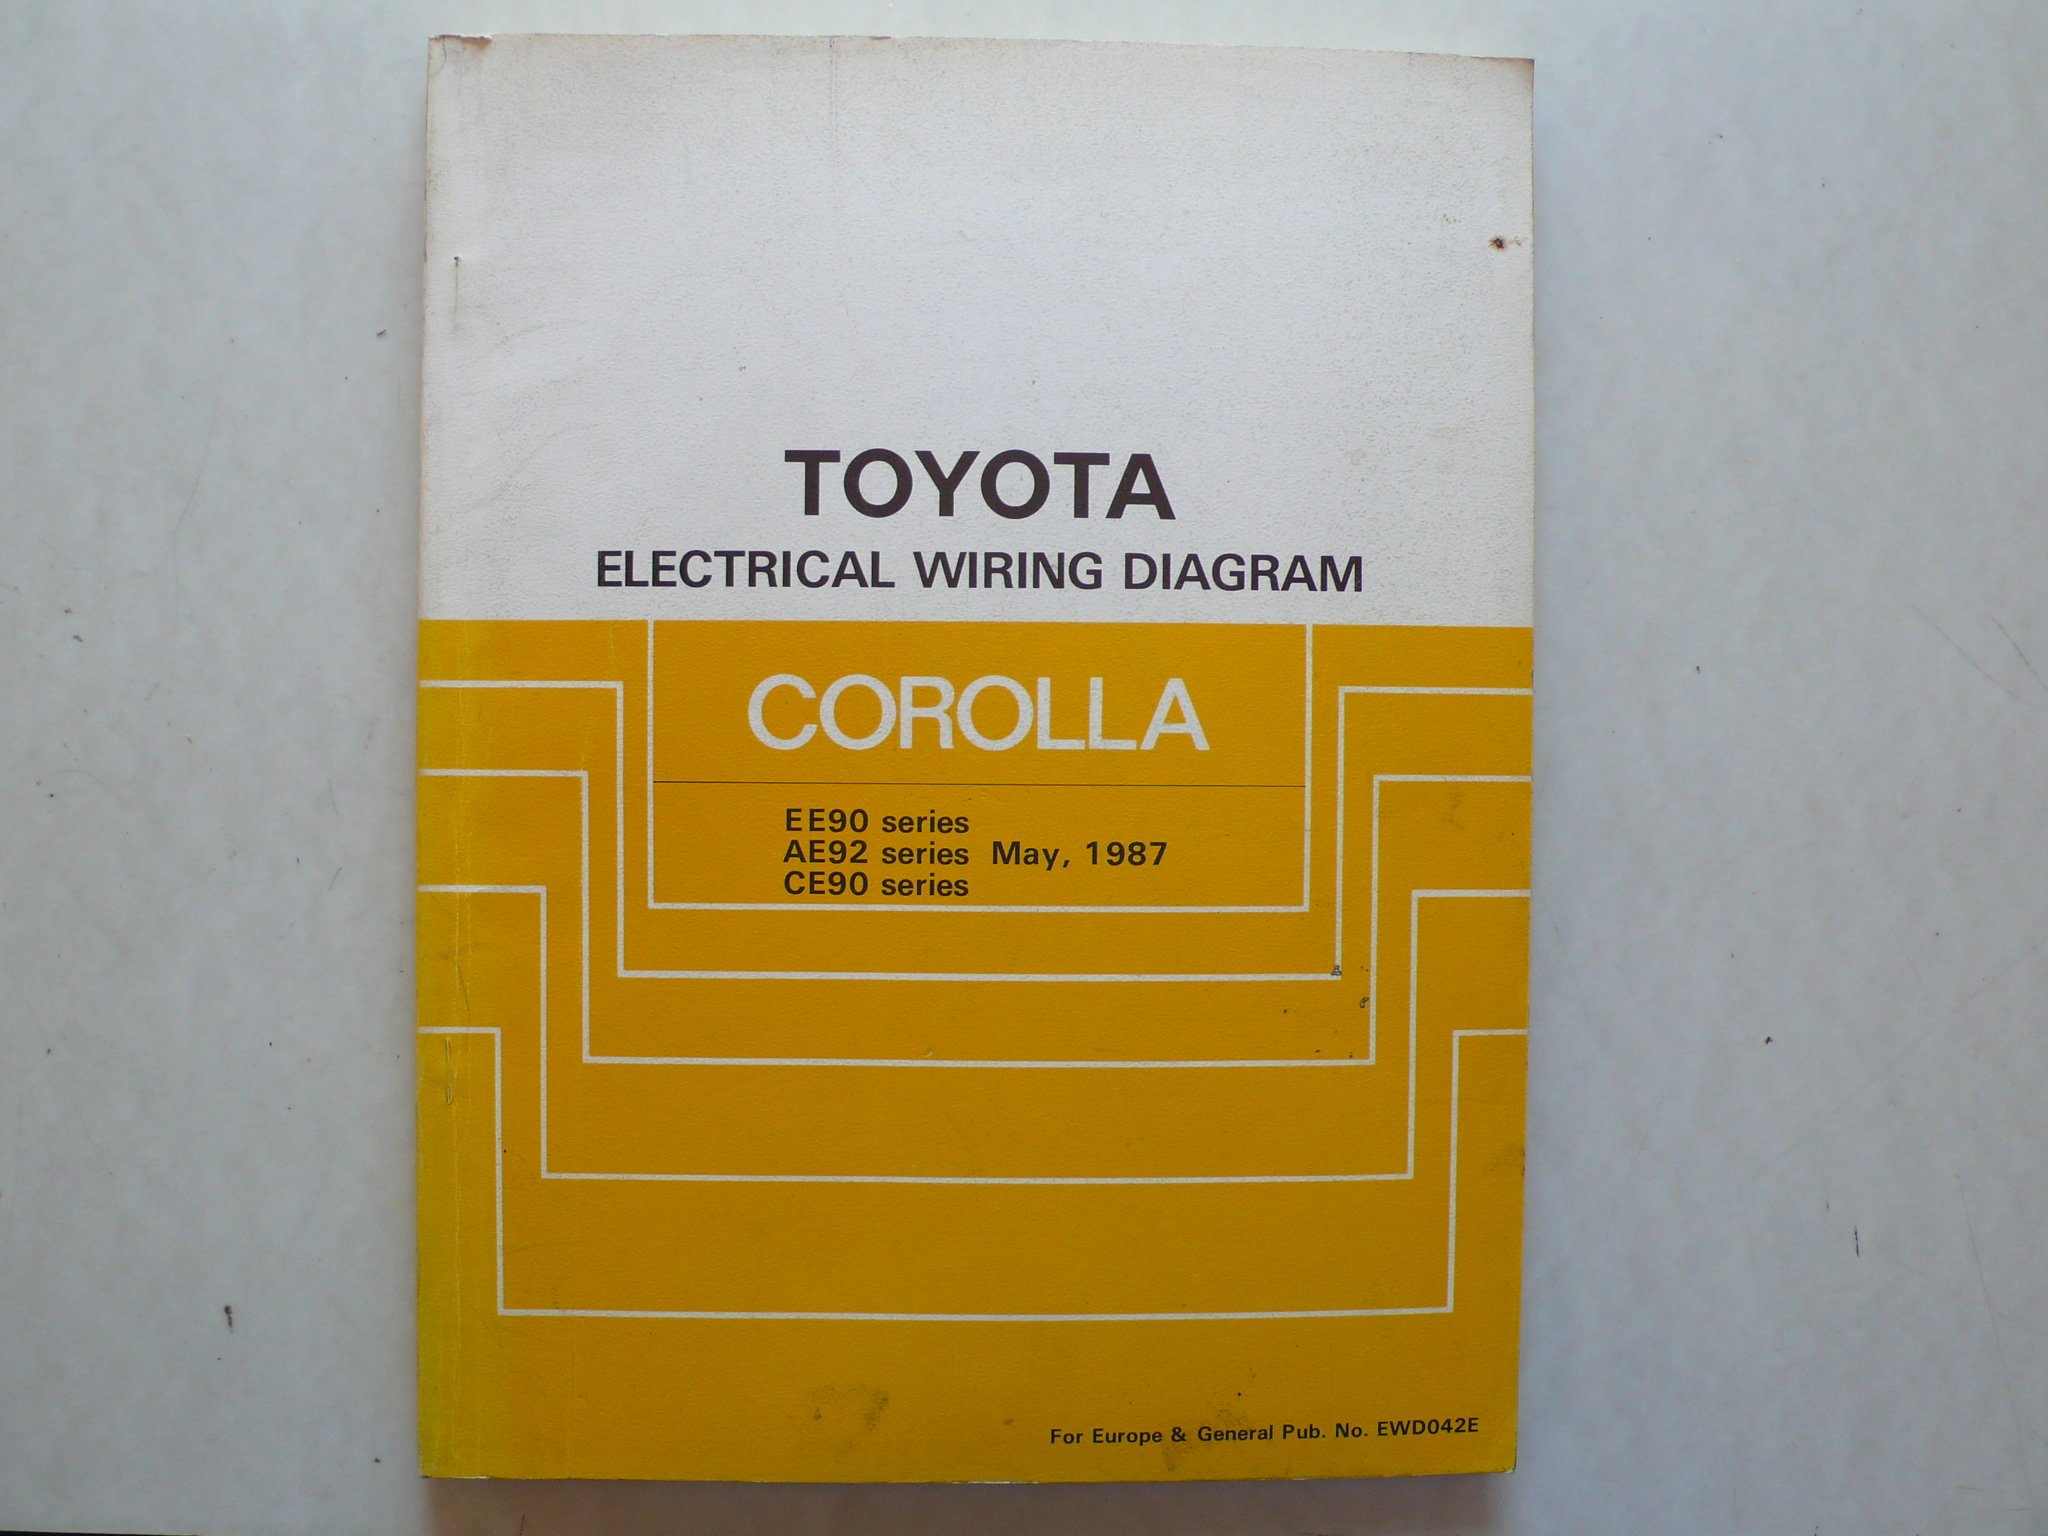 Peachy Toyota Corolla Ee90 Ae92 Ce 90 Serie Electrical Wiring Diagram Wiring Digital Resources Bemuashebarightsorg